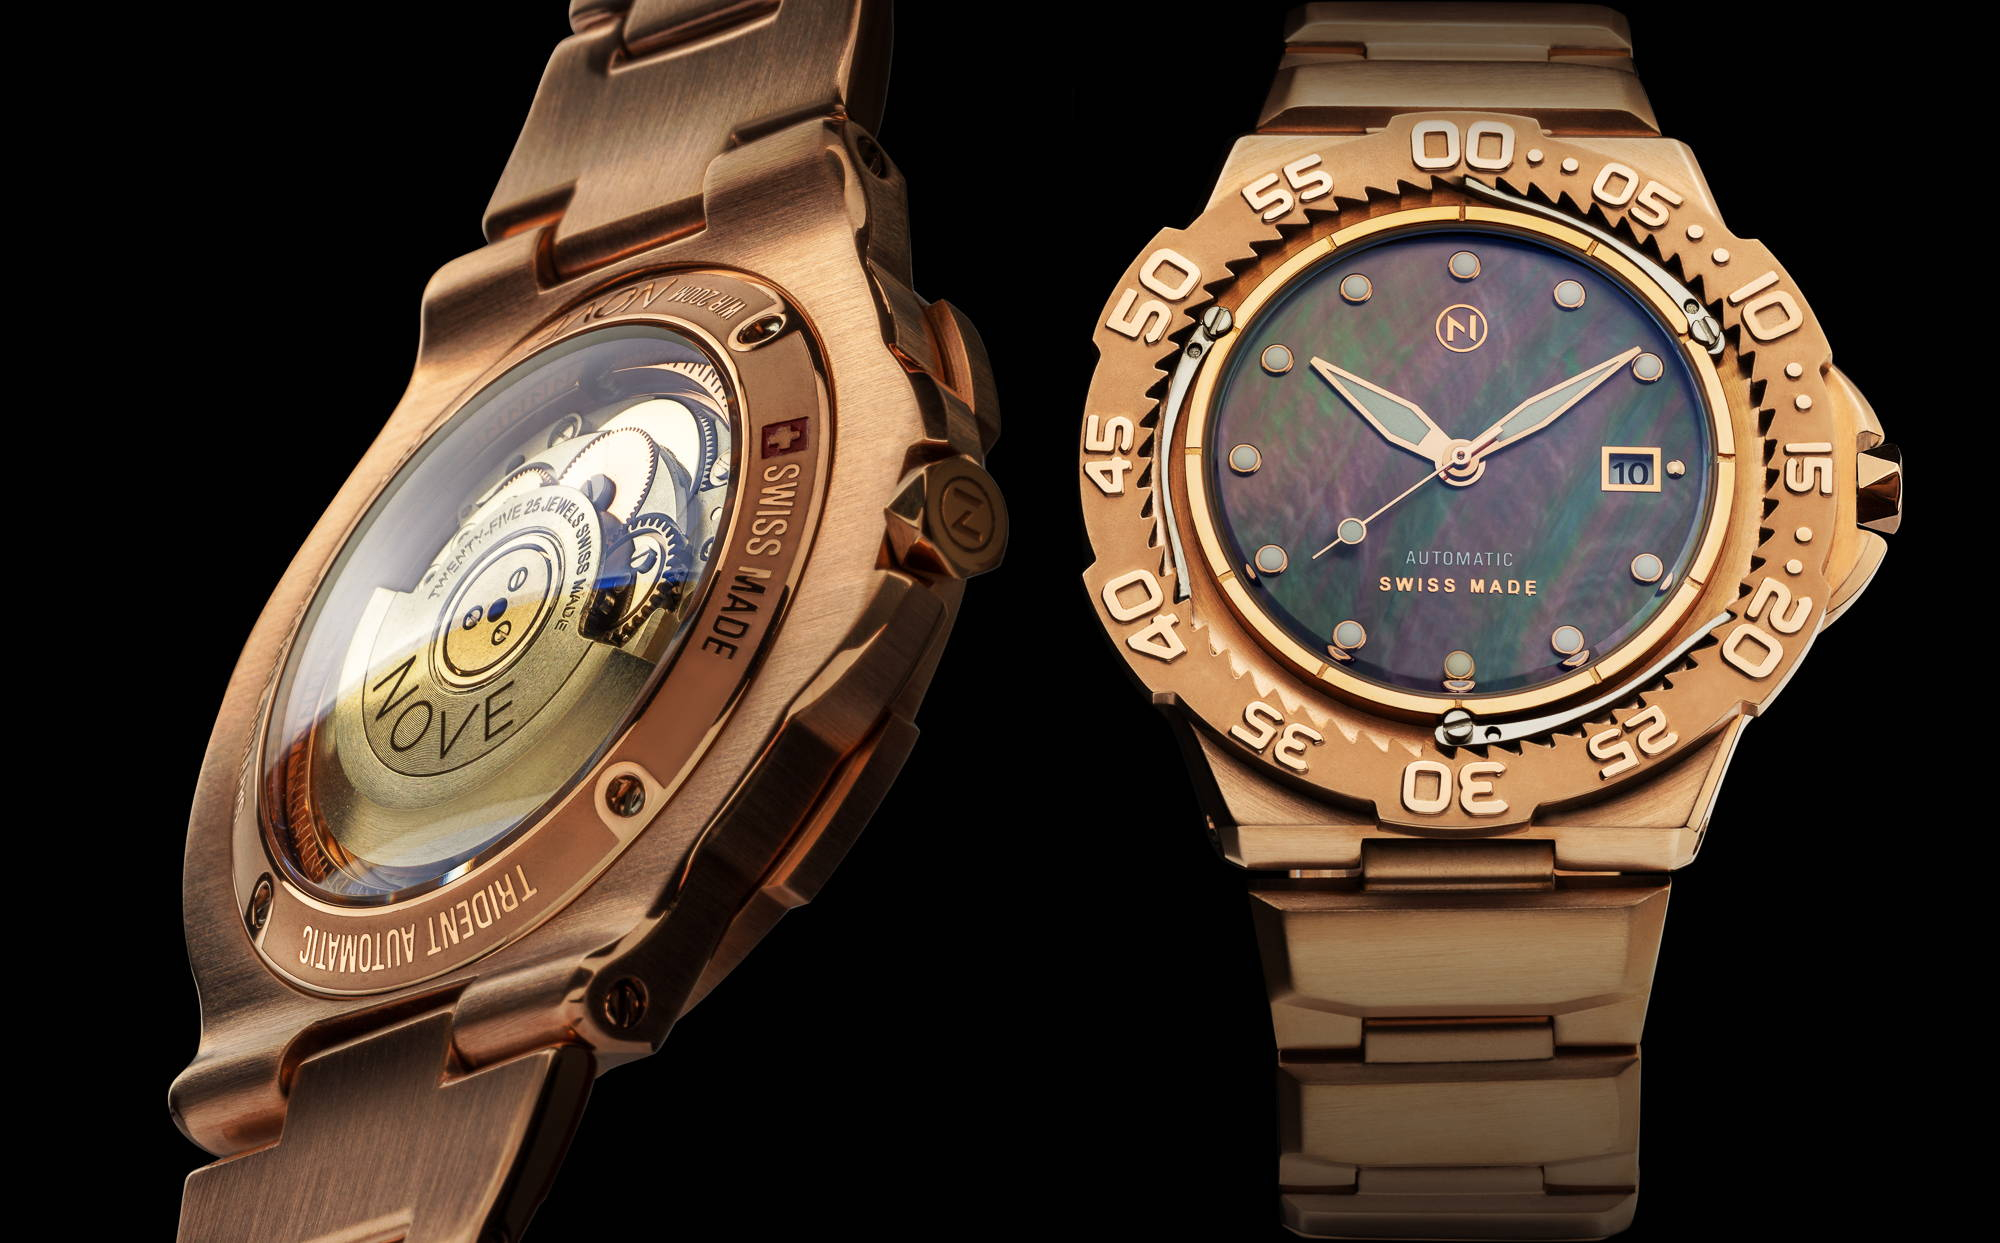 Rose Gold slim trident automatic dive watch tool watch with beautiful Tahitian mother of pearl dial